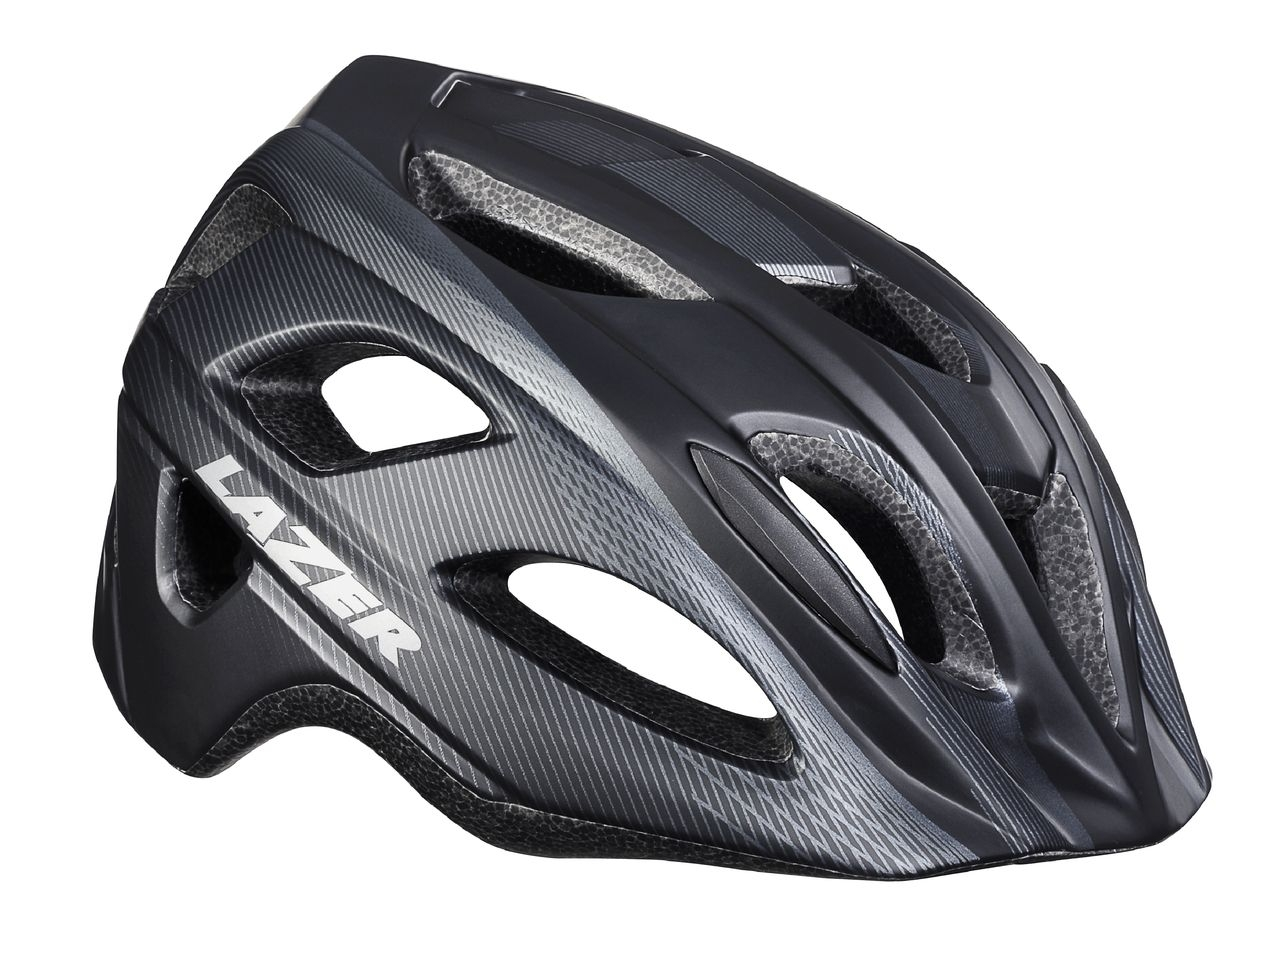 Casque Lazer BEAM Black - M (55-59)